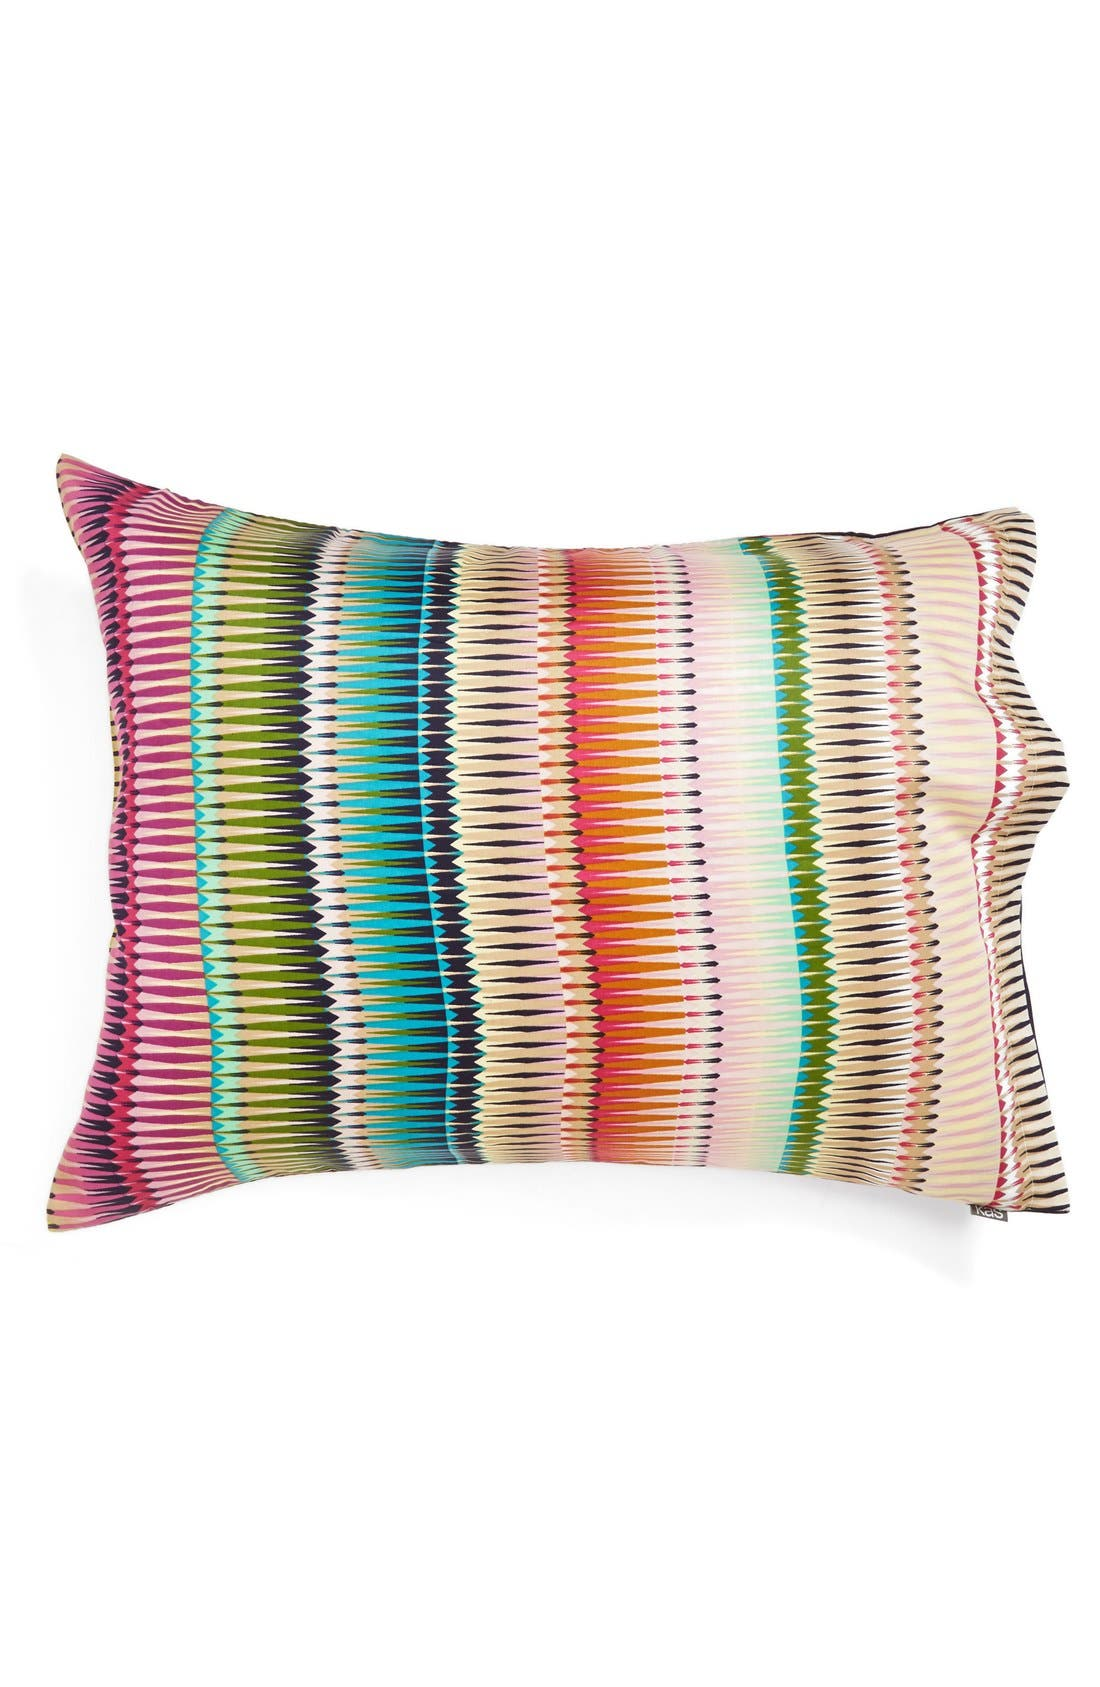 Main Image - Kas Designs 'Indio' Pillow Case (Online Only)